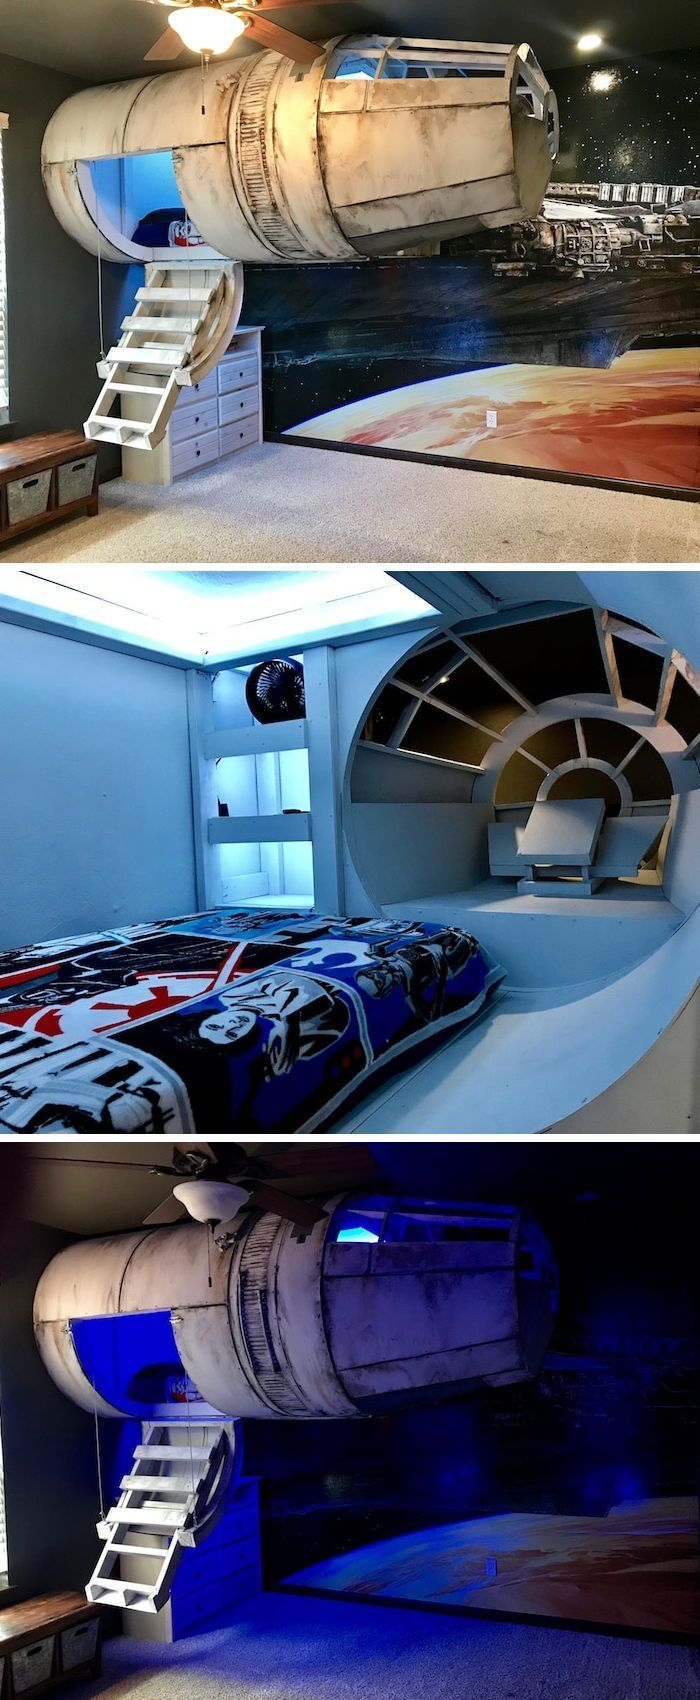 Parents Build An Elaborate Star Wars Bed To Get Their Son To Sleep